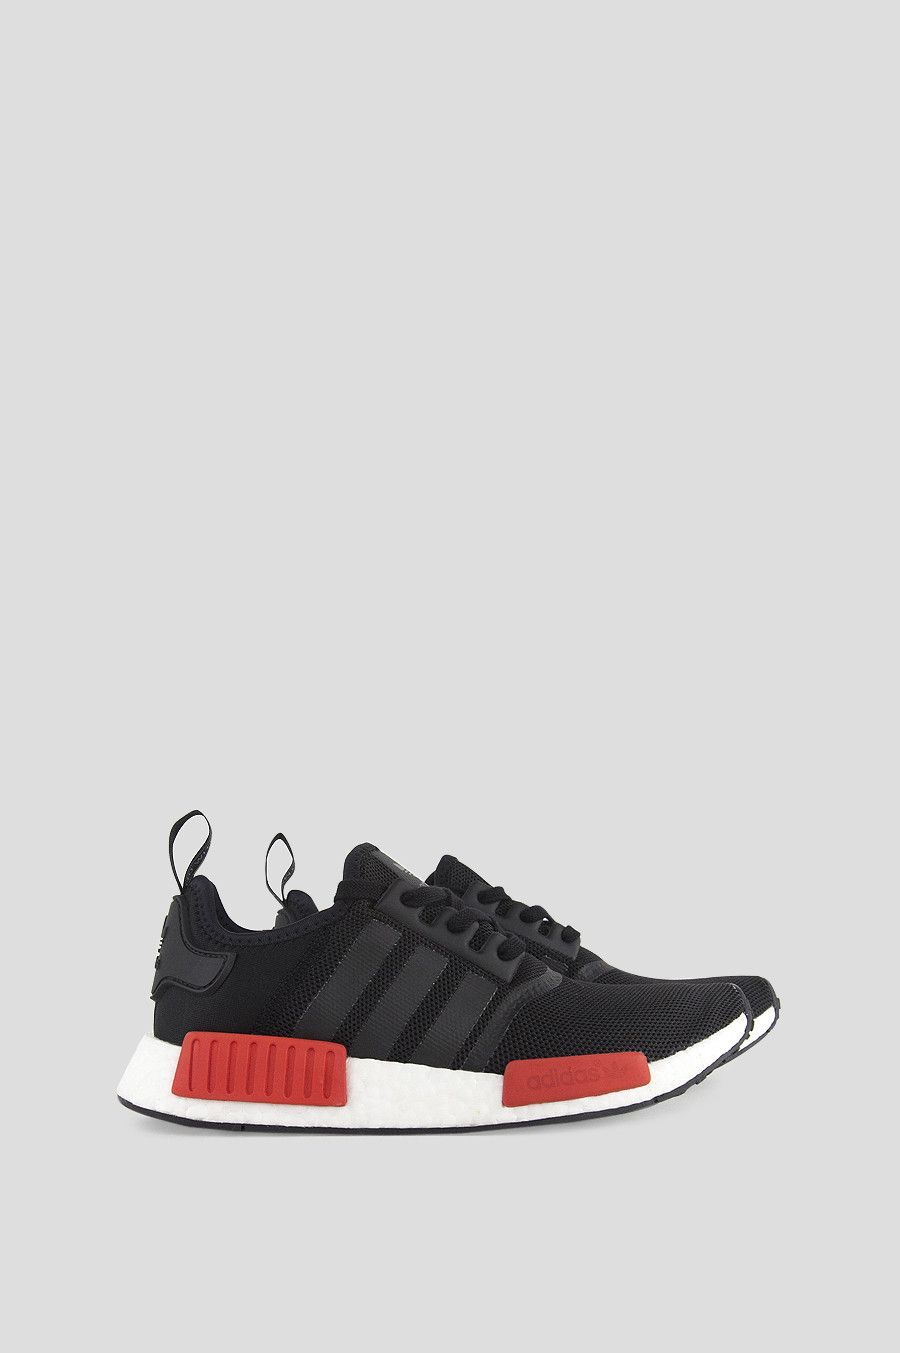 adidas nmd r1 black white red products pinterest. Black Bedroom Furniture Sets. Home Design Ideas